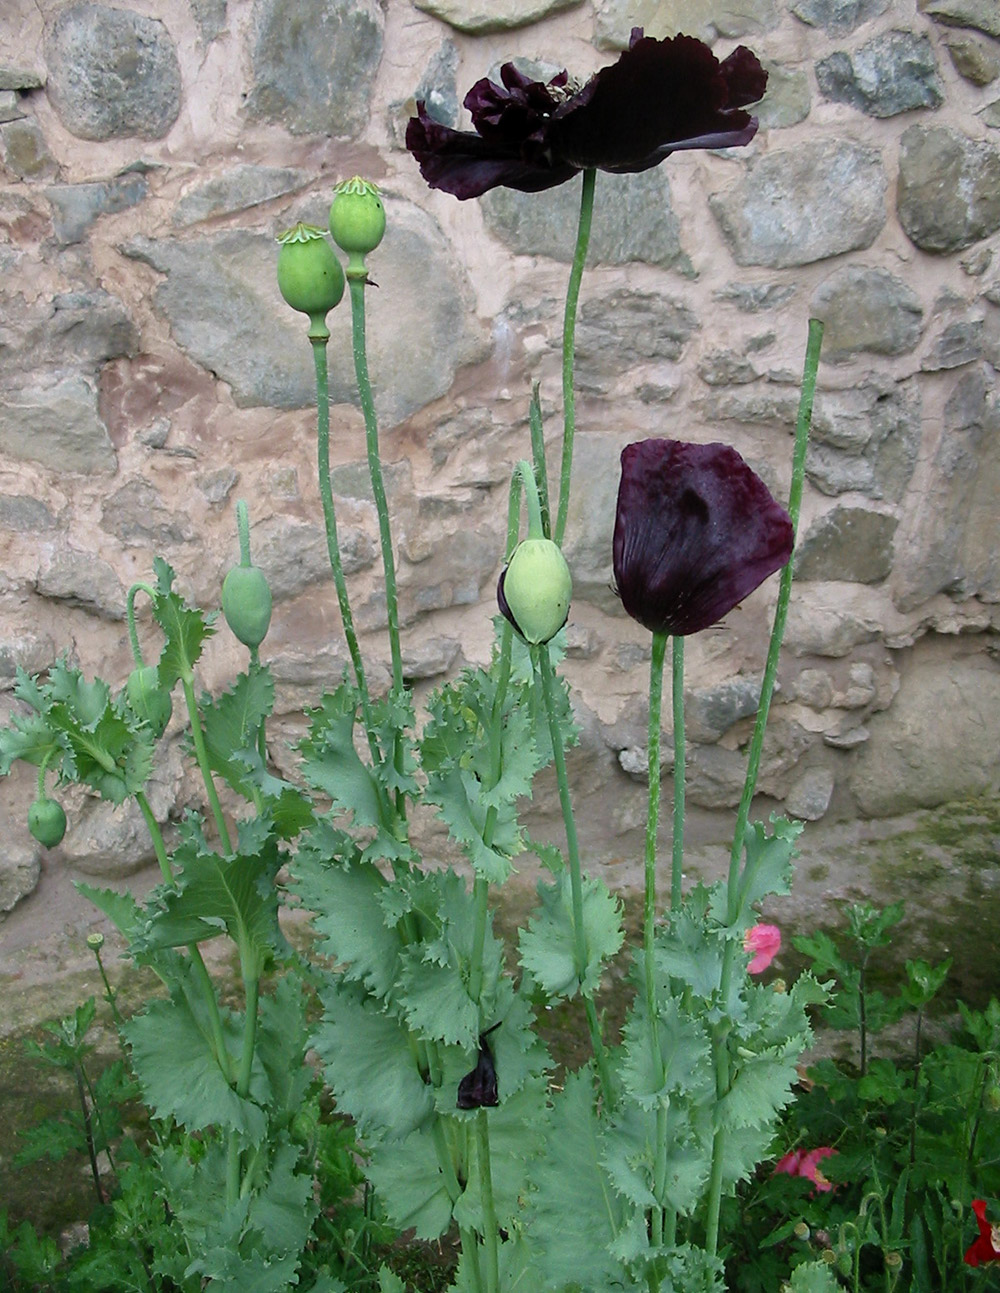 Black poppies at Pari Mahal. Image credit: Anuradha Chaturvedi